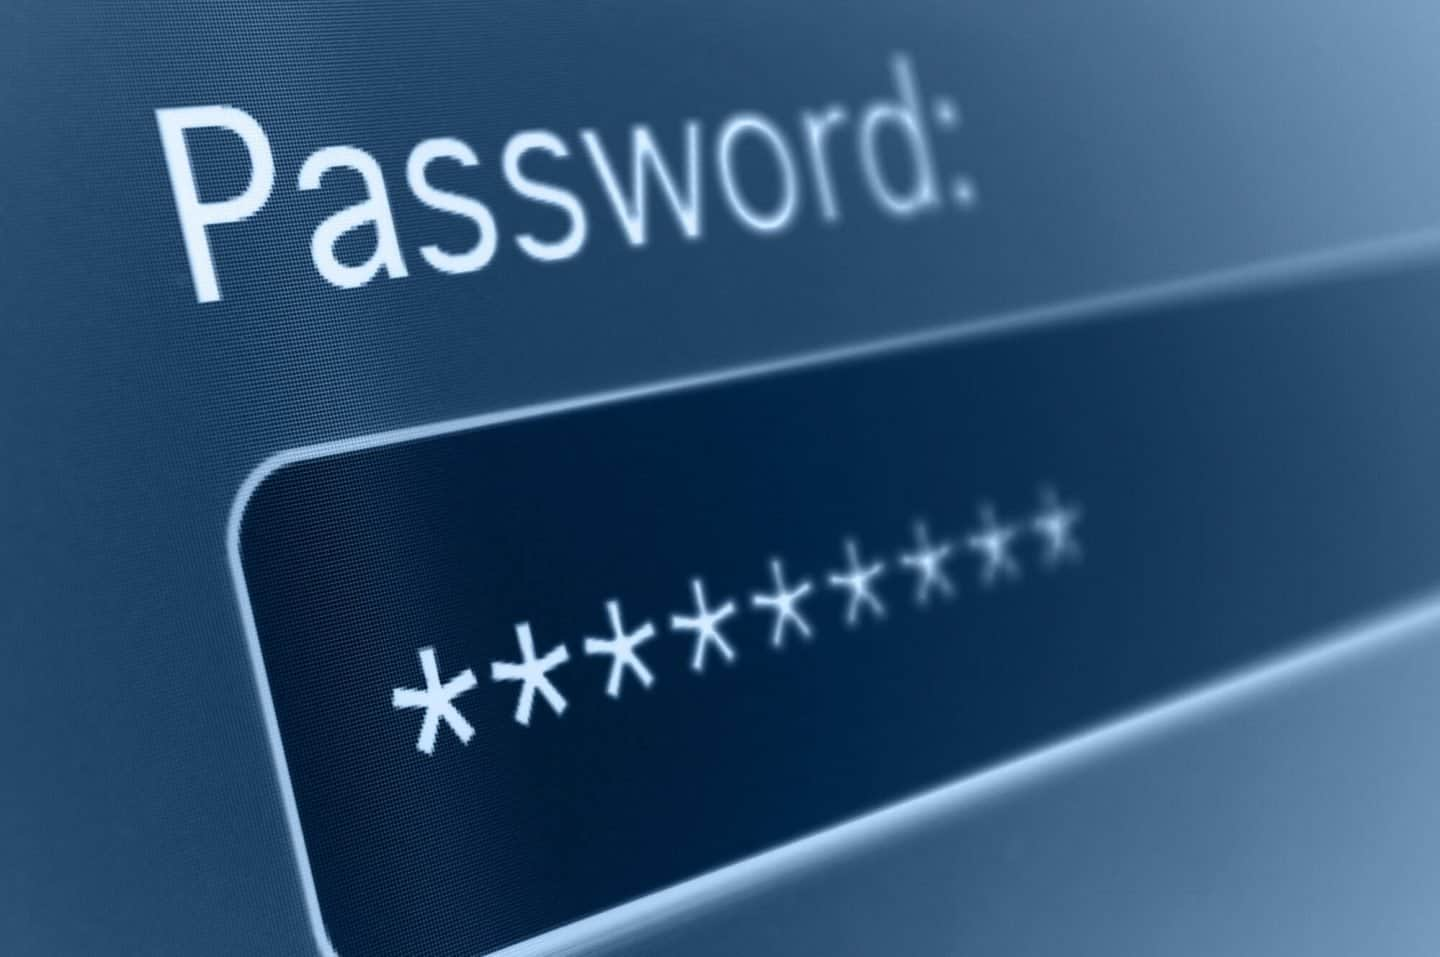 How To Come Up With A Strong Password That You Won't Forget